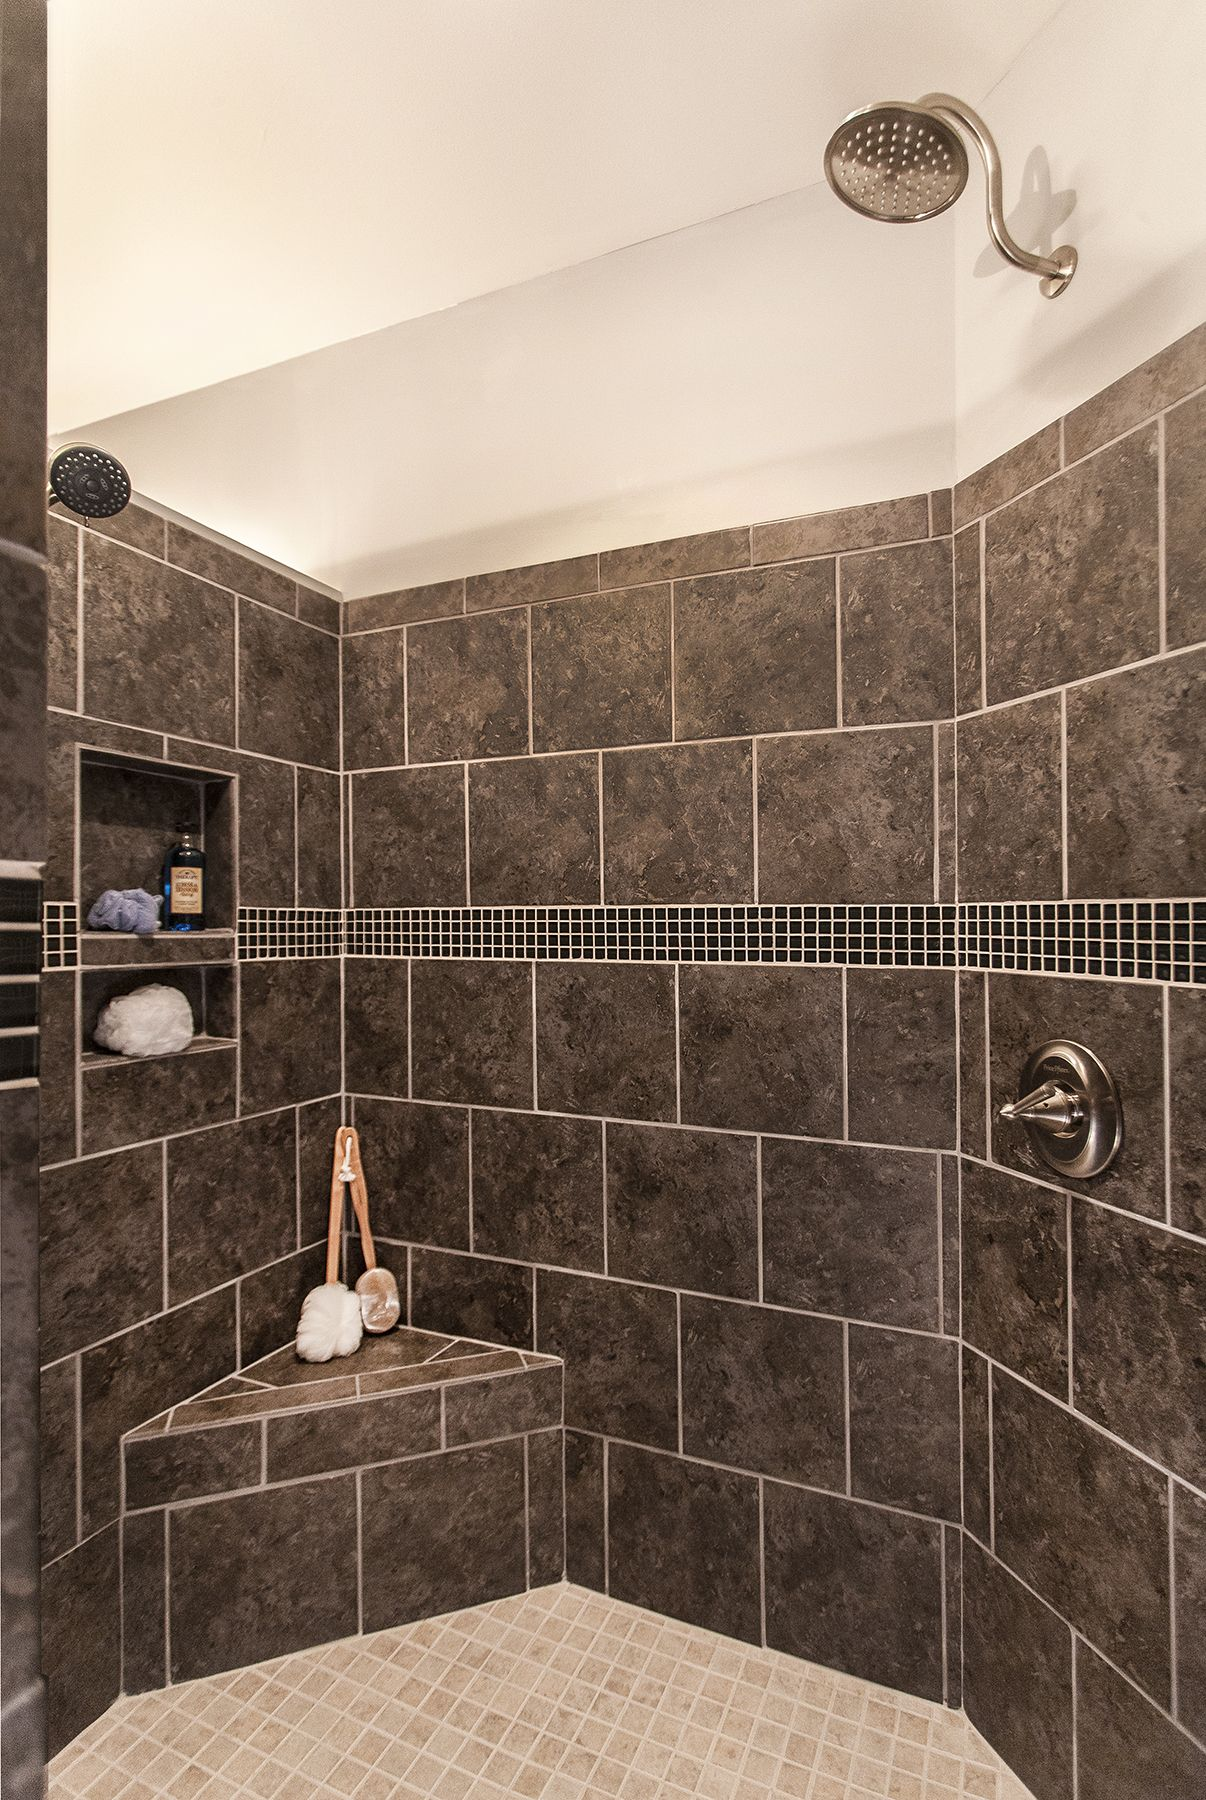 Greatest #Shower Ever! Walk-in shower with no door, 2 shower heads ...